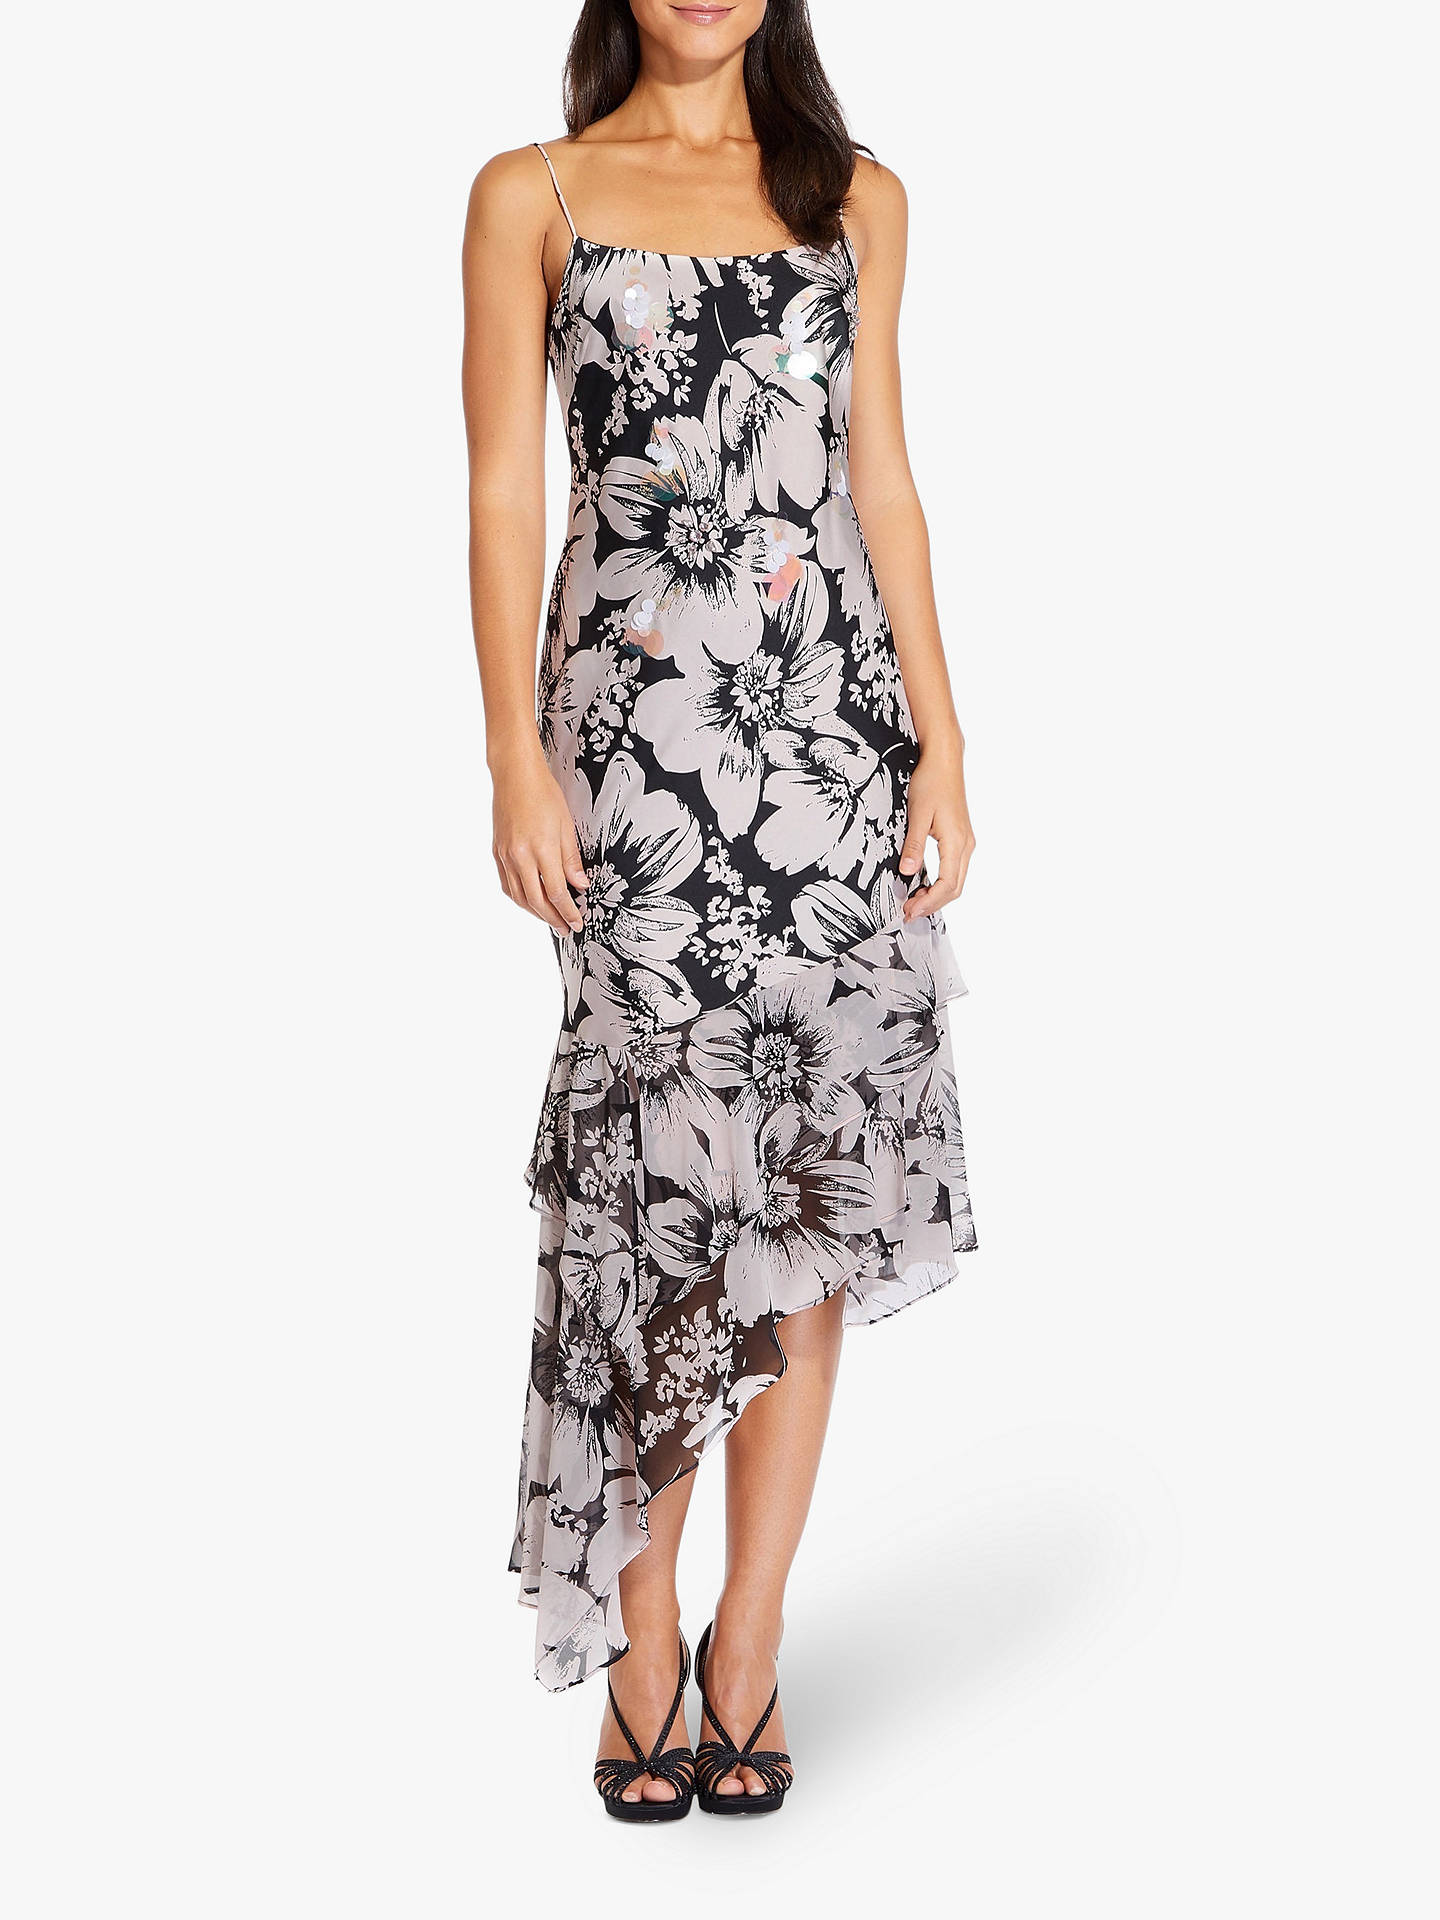 095578b241ef Buy Adrianna Papell Bias Cut Floral Dress, Blush/Black, 6 Online at  johnlewis ...